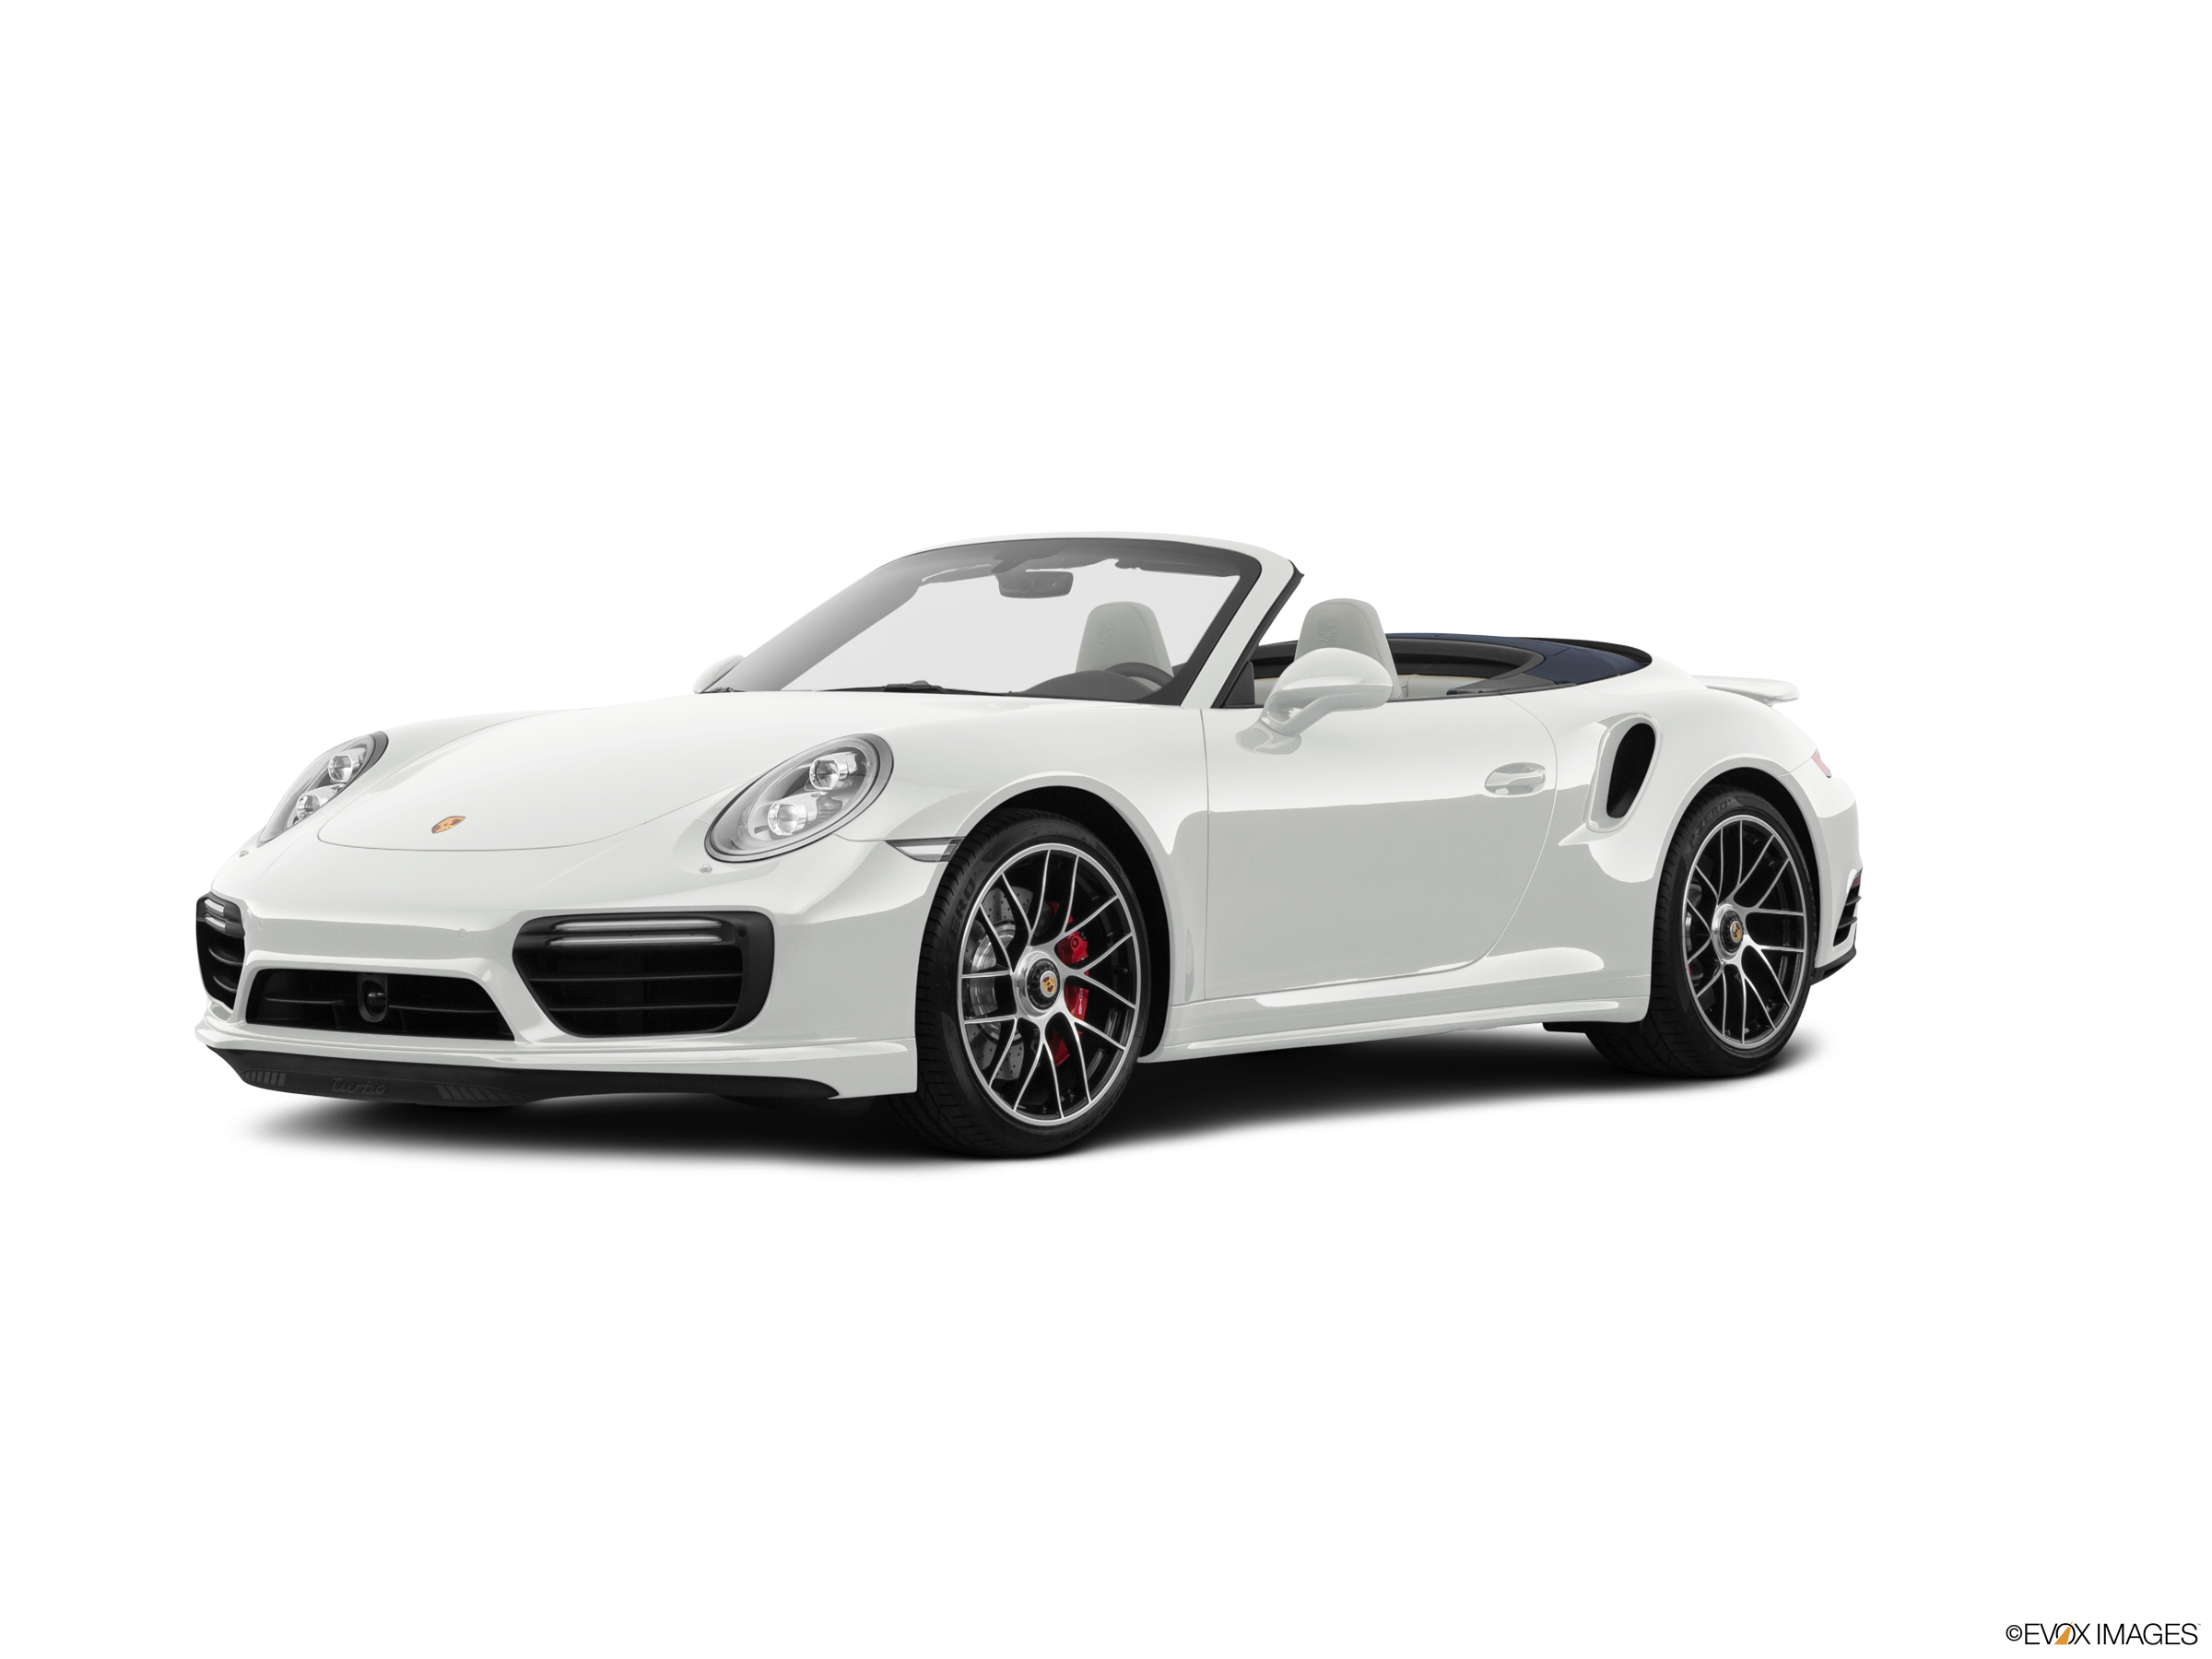 Highest Horsepower Luxury Vehicles of 2019 - 2019 Porsche 911